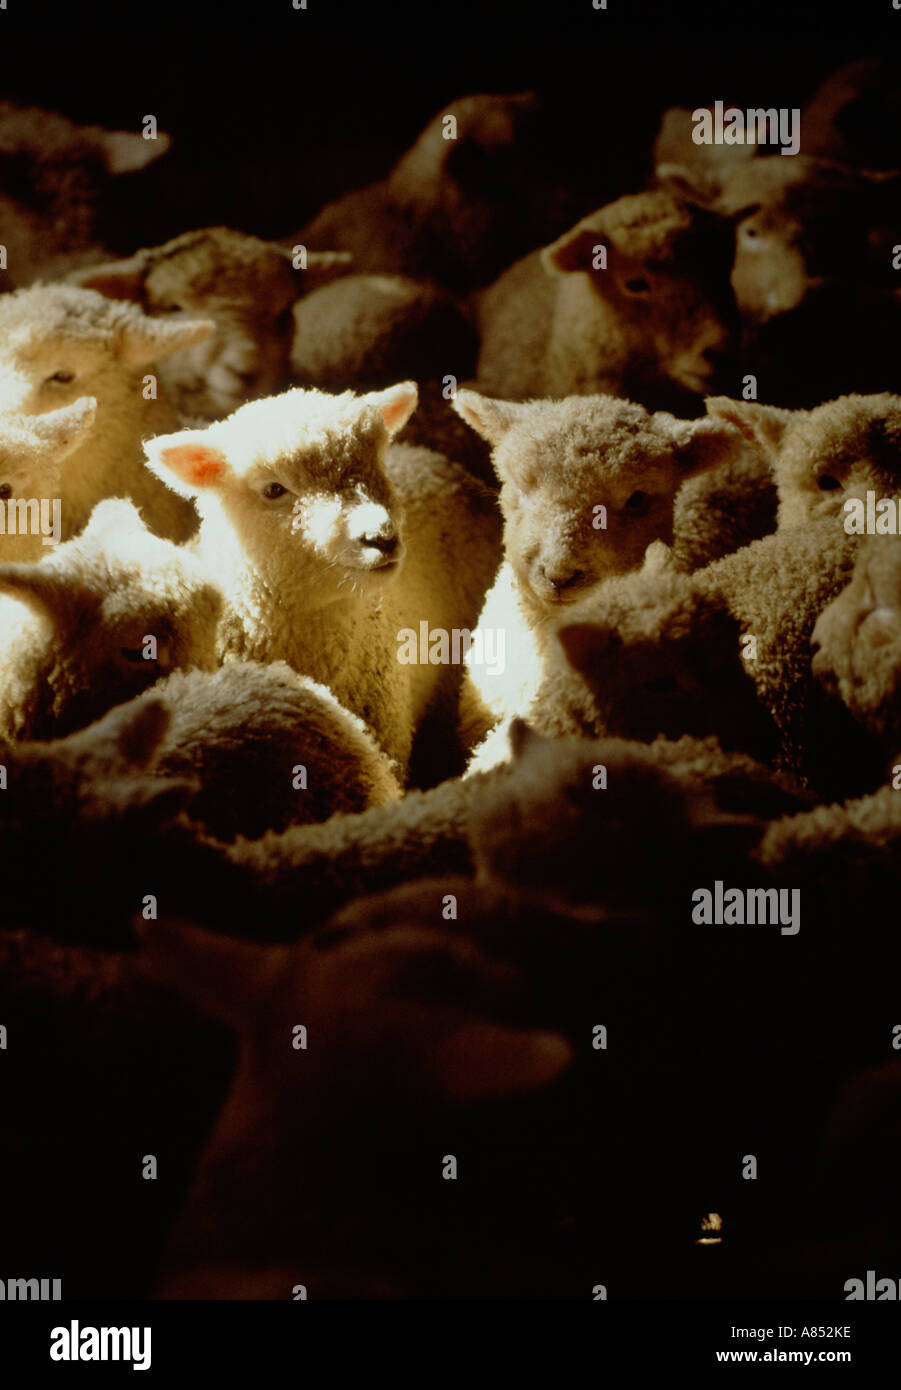 Close-up of flock of lambs in pen at market. New Zealand. - Stock Image